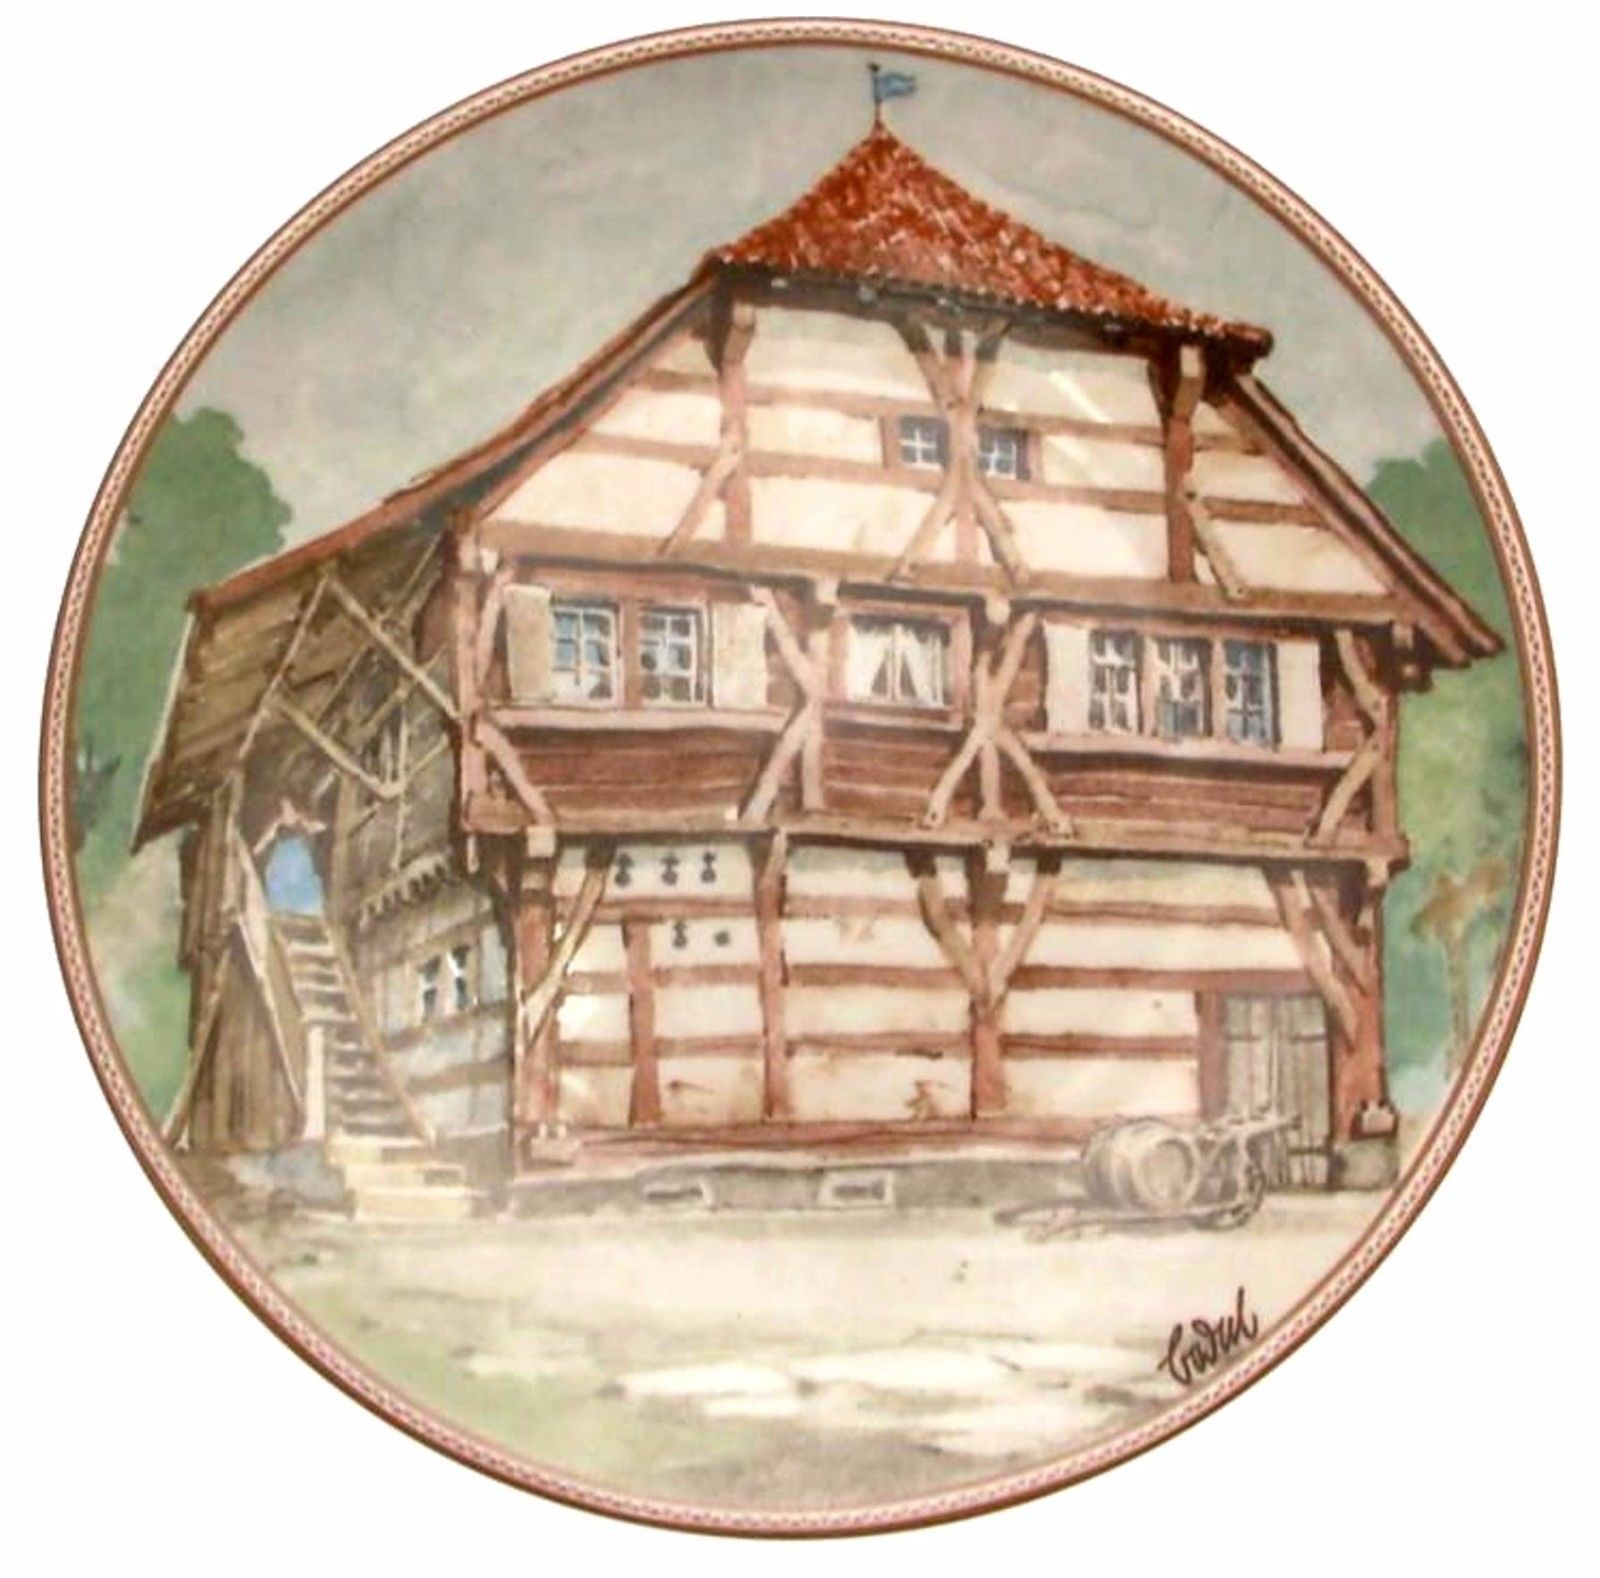 Bodenseehaus in Immenstaad Karl Bedal German Half Timbered House Plate